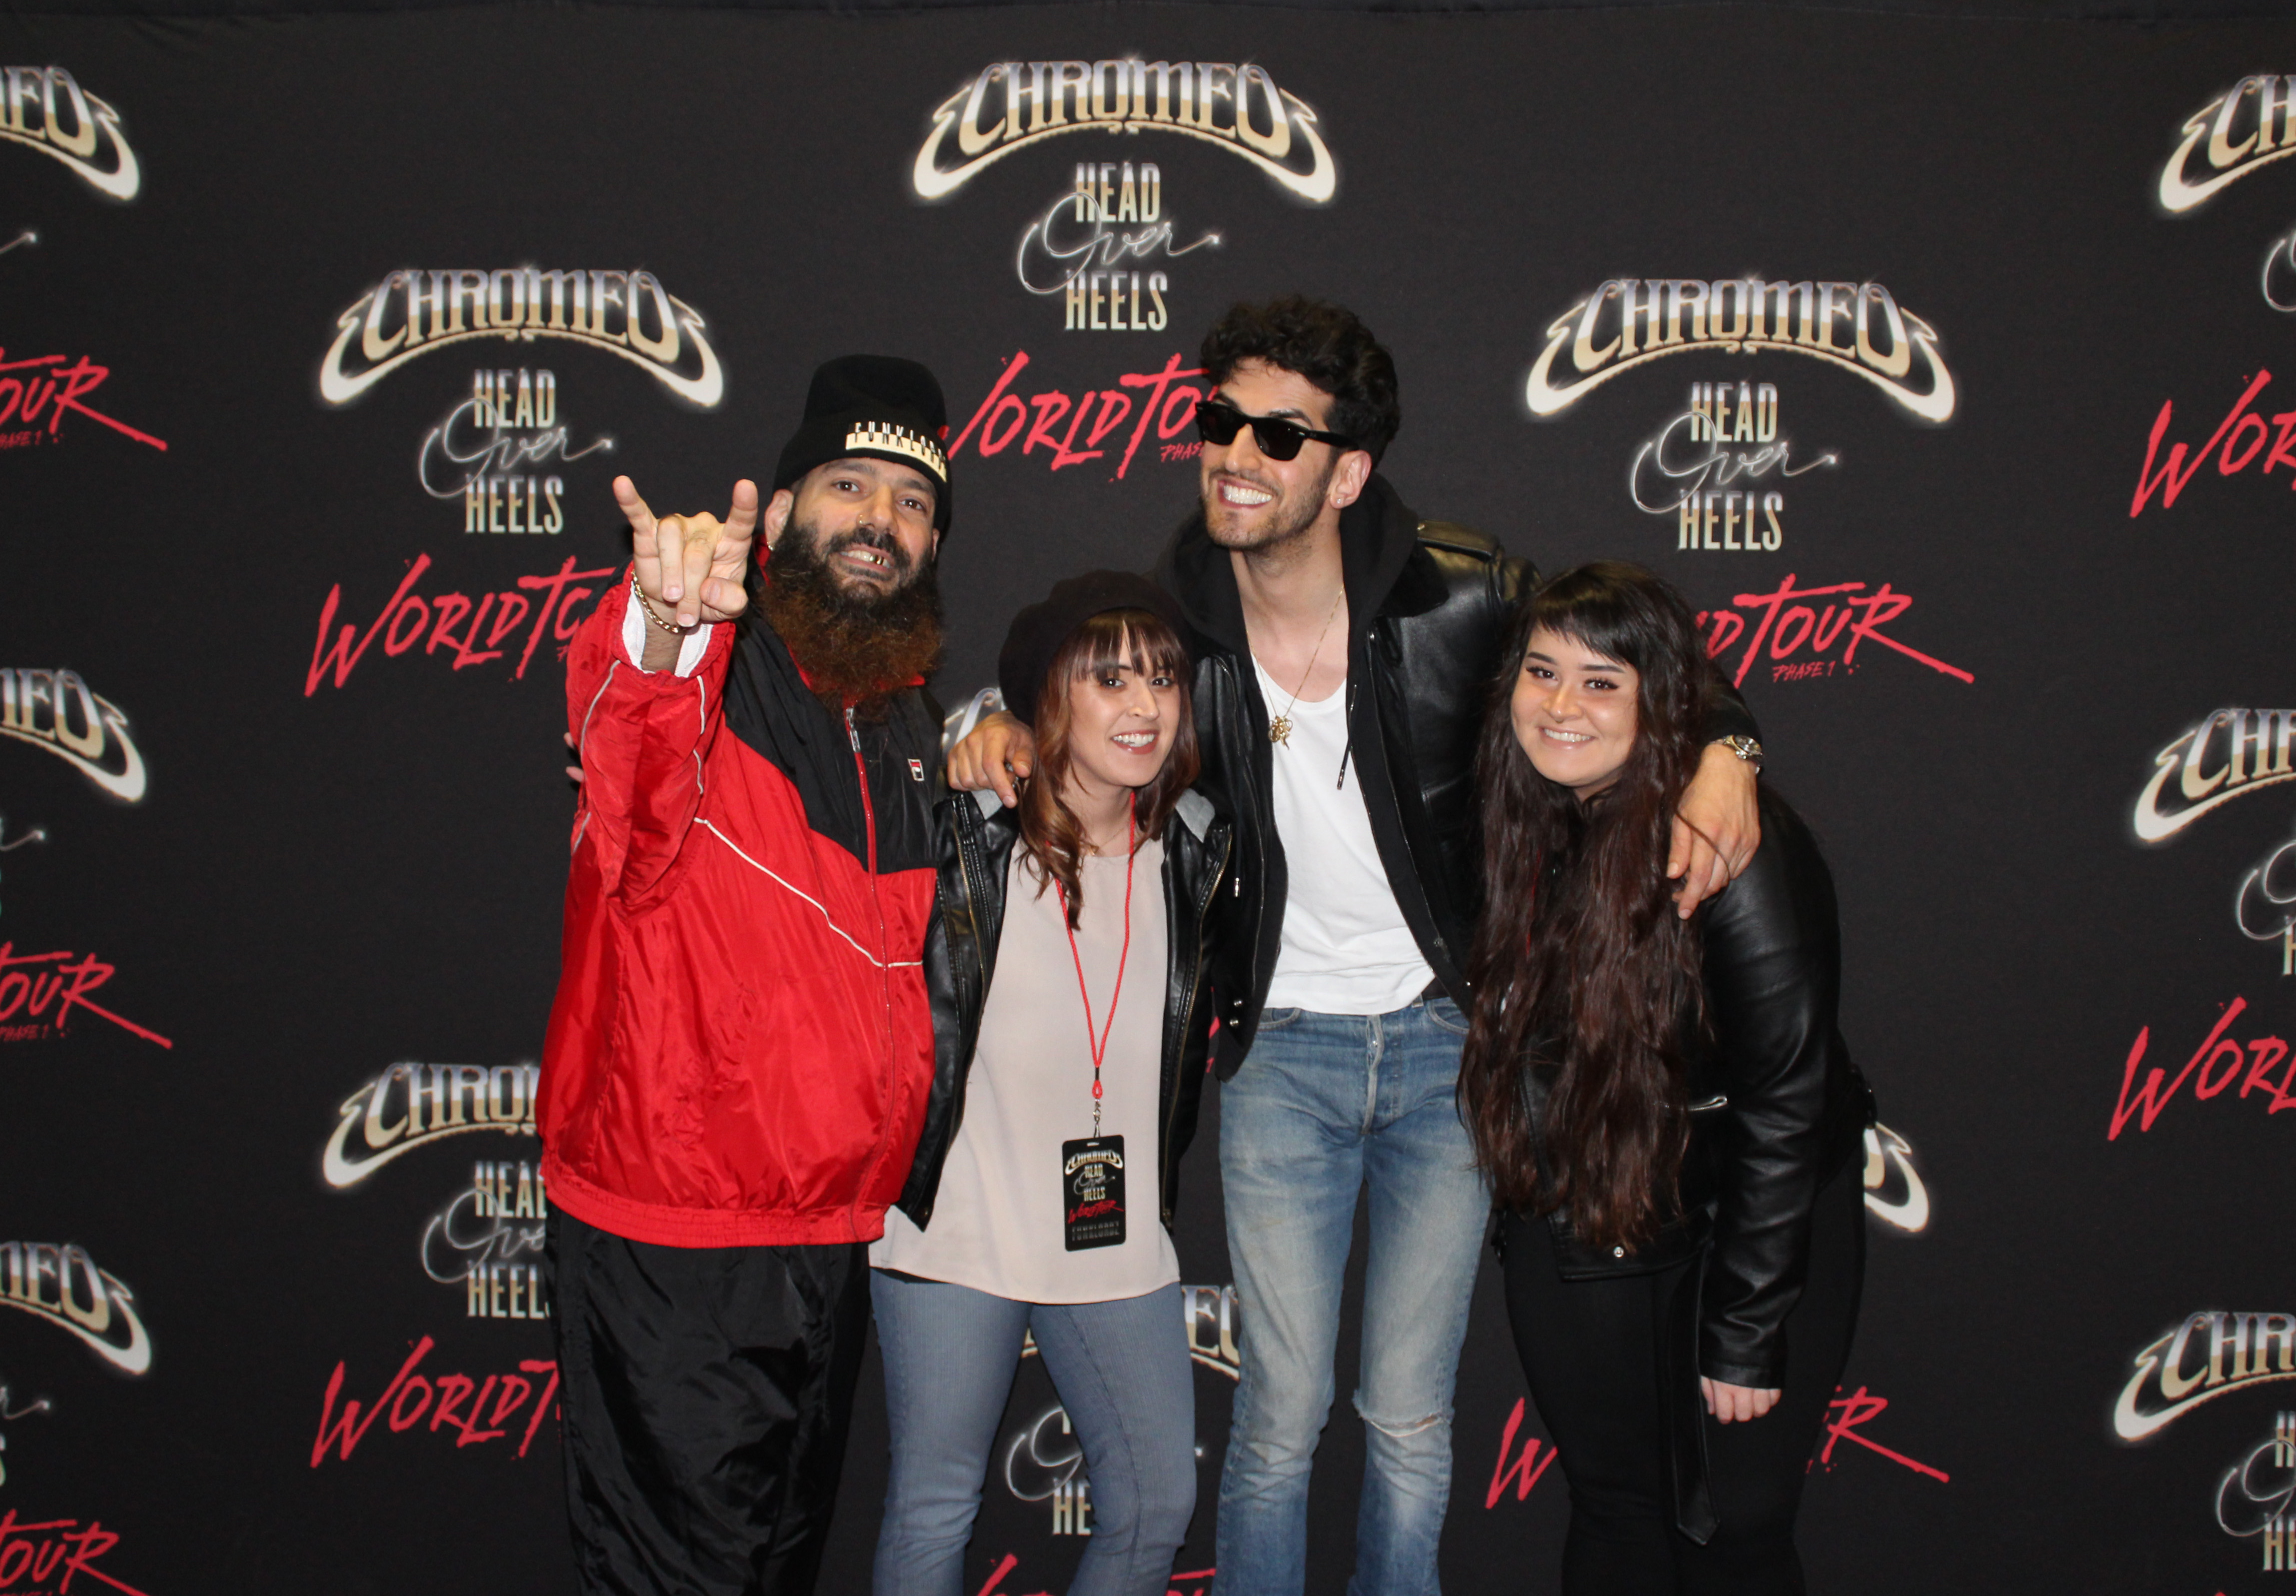 Chromeo Head Over Heels Tour Official Vip Packages Cid Entertainment